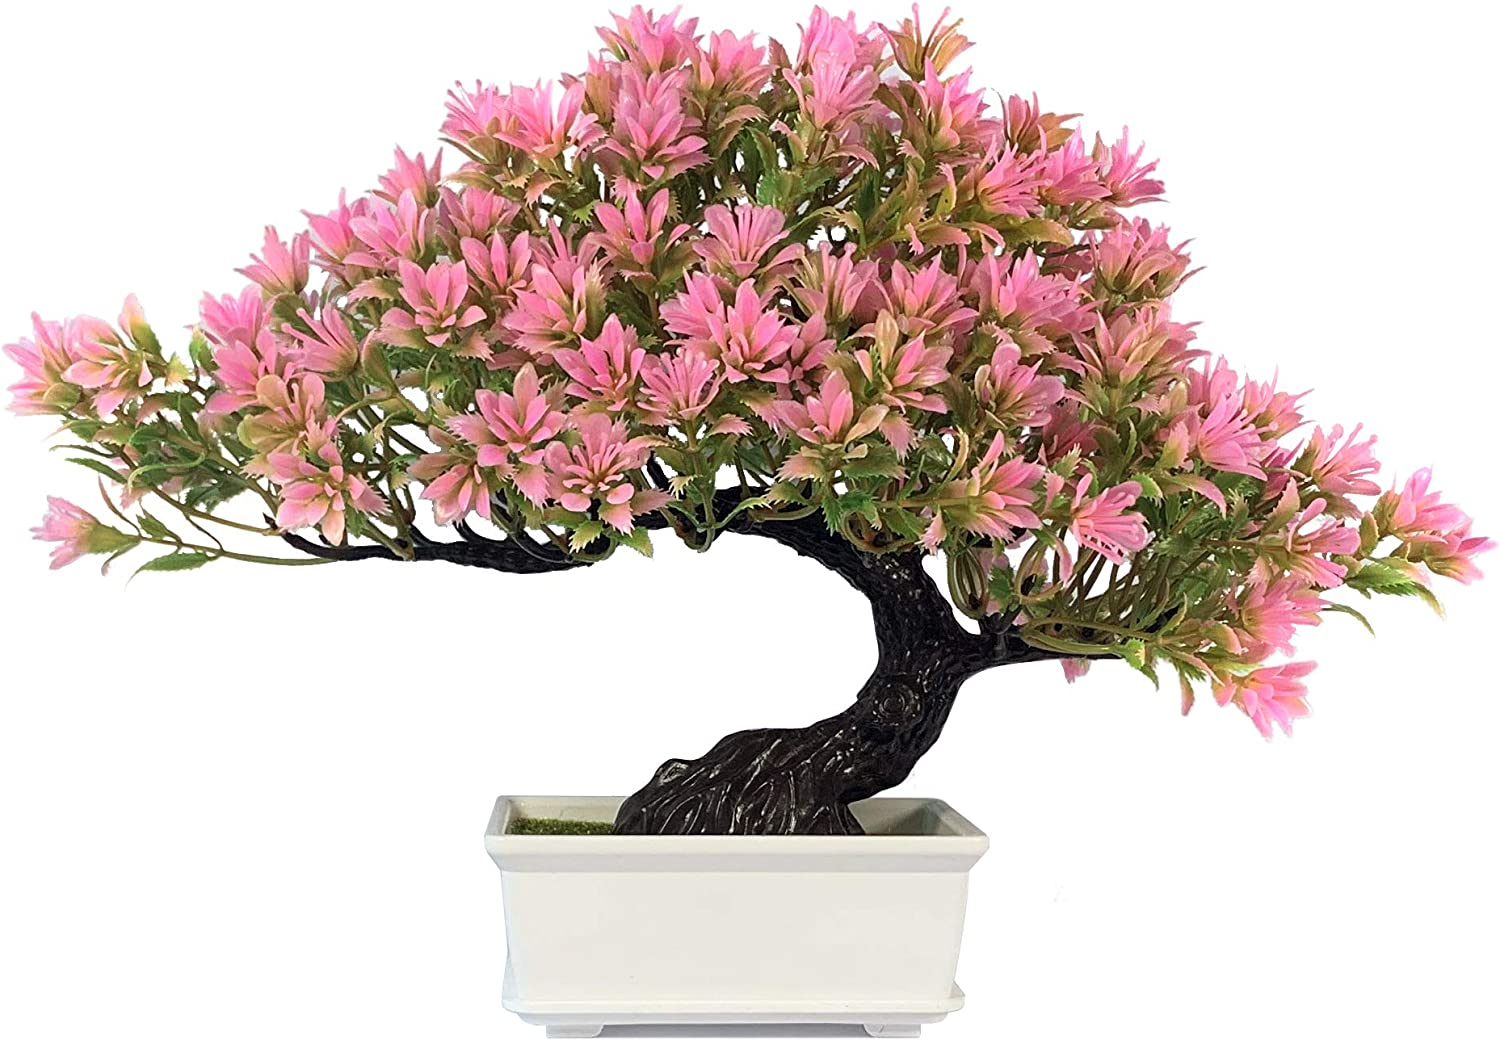 yoerm Artificial Bonsai Juniper Tree for Home Office Indoor Showcase Decor